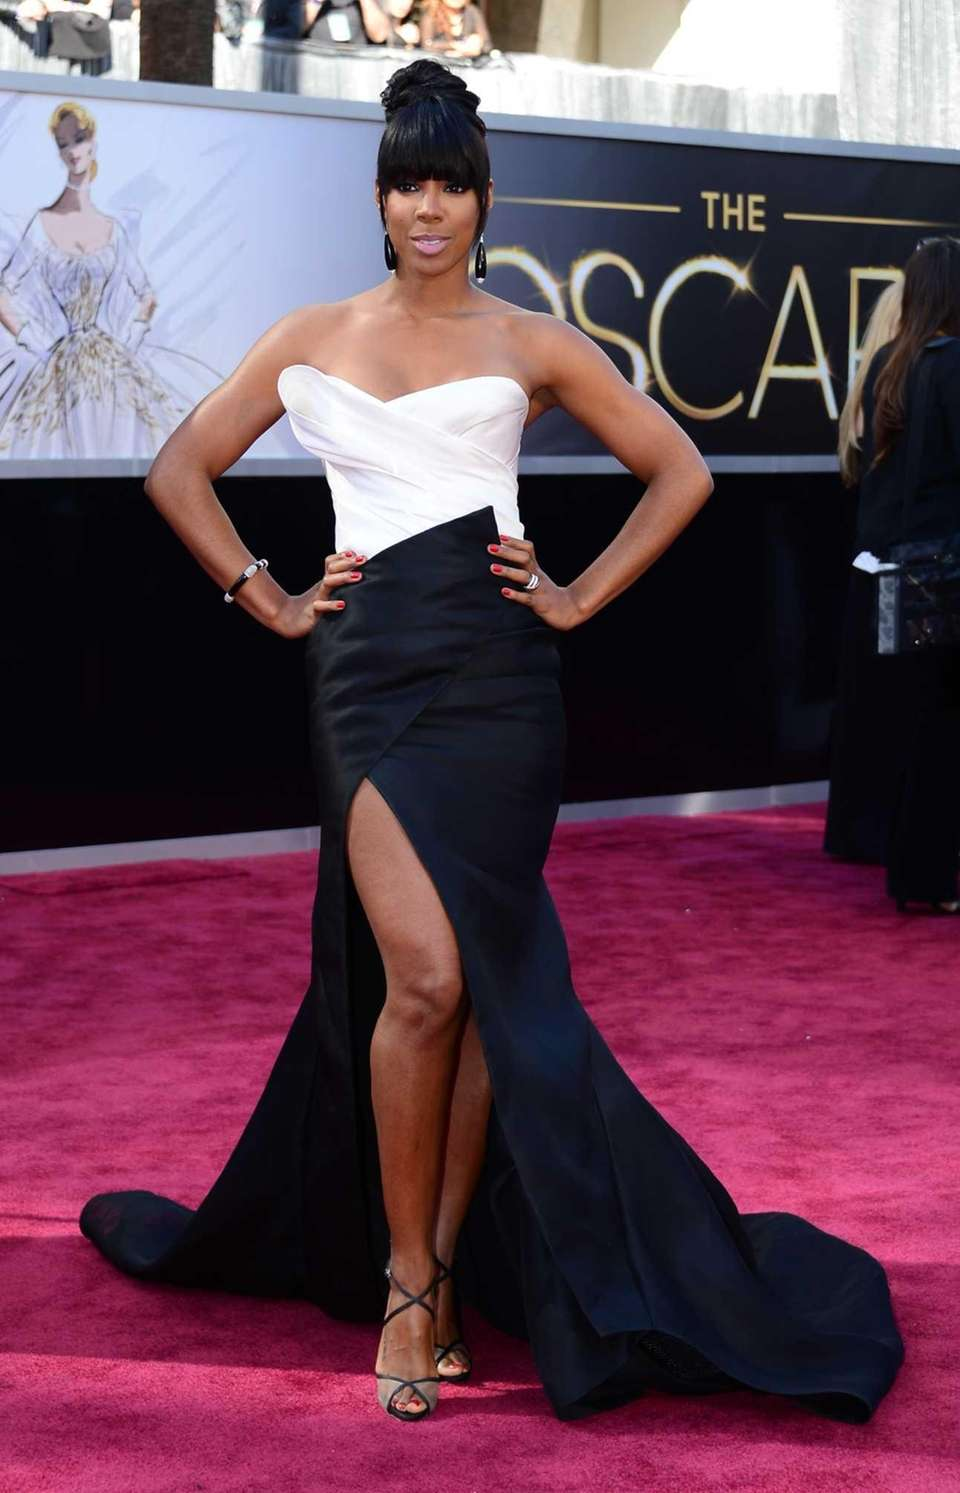 Kelly Rowland arrives on the red carpet for